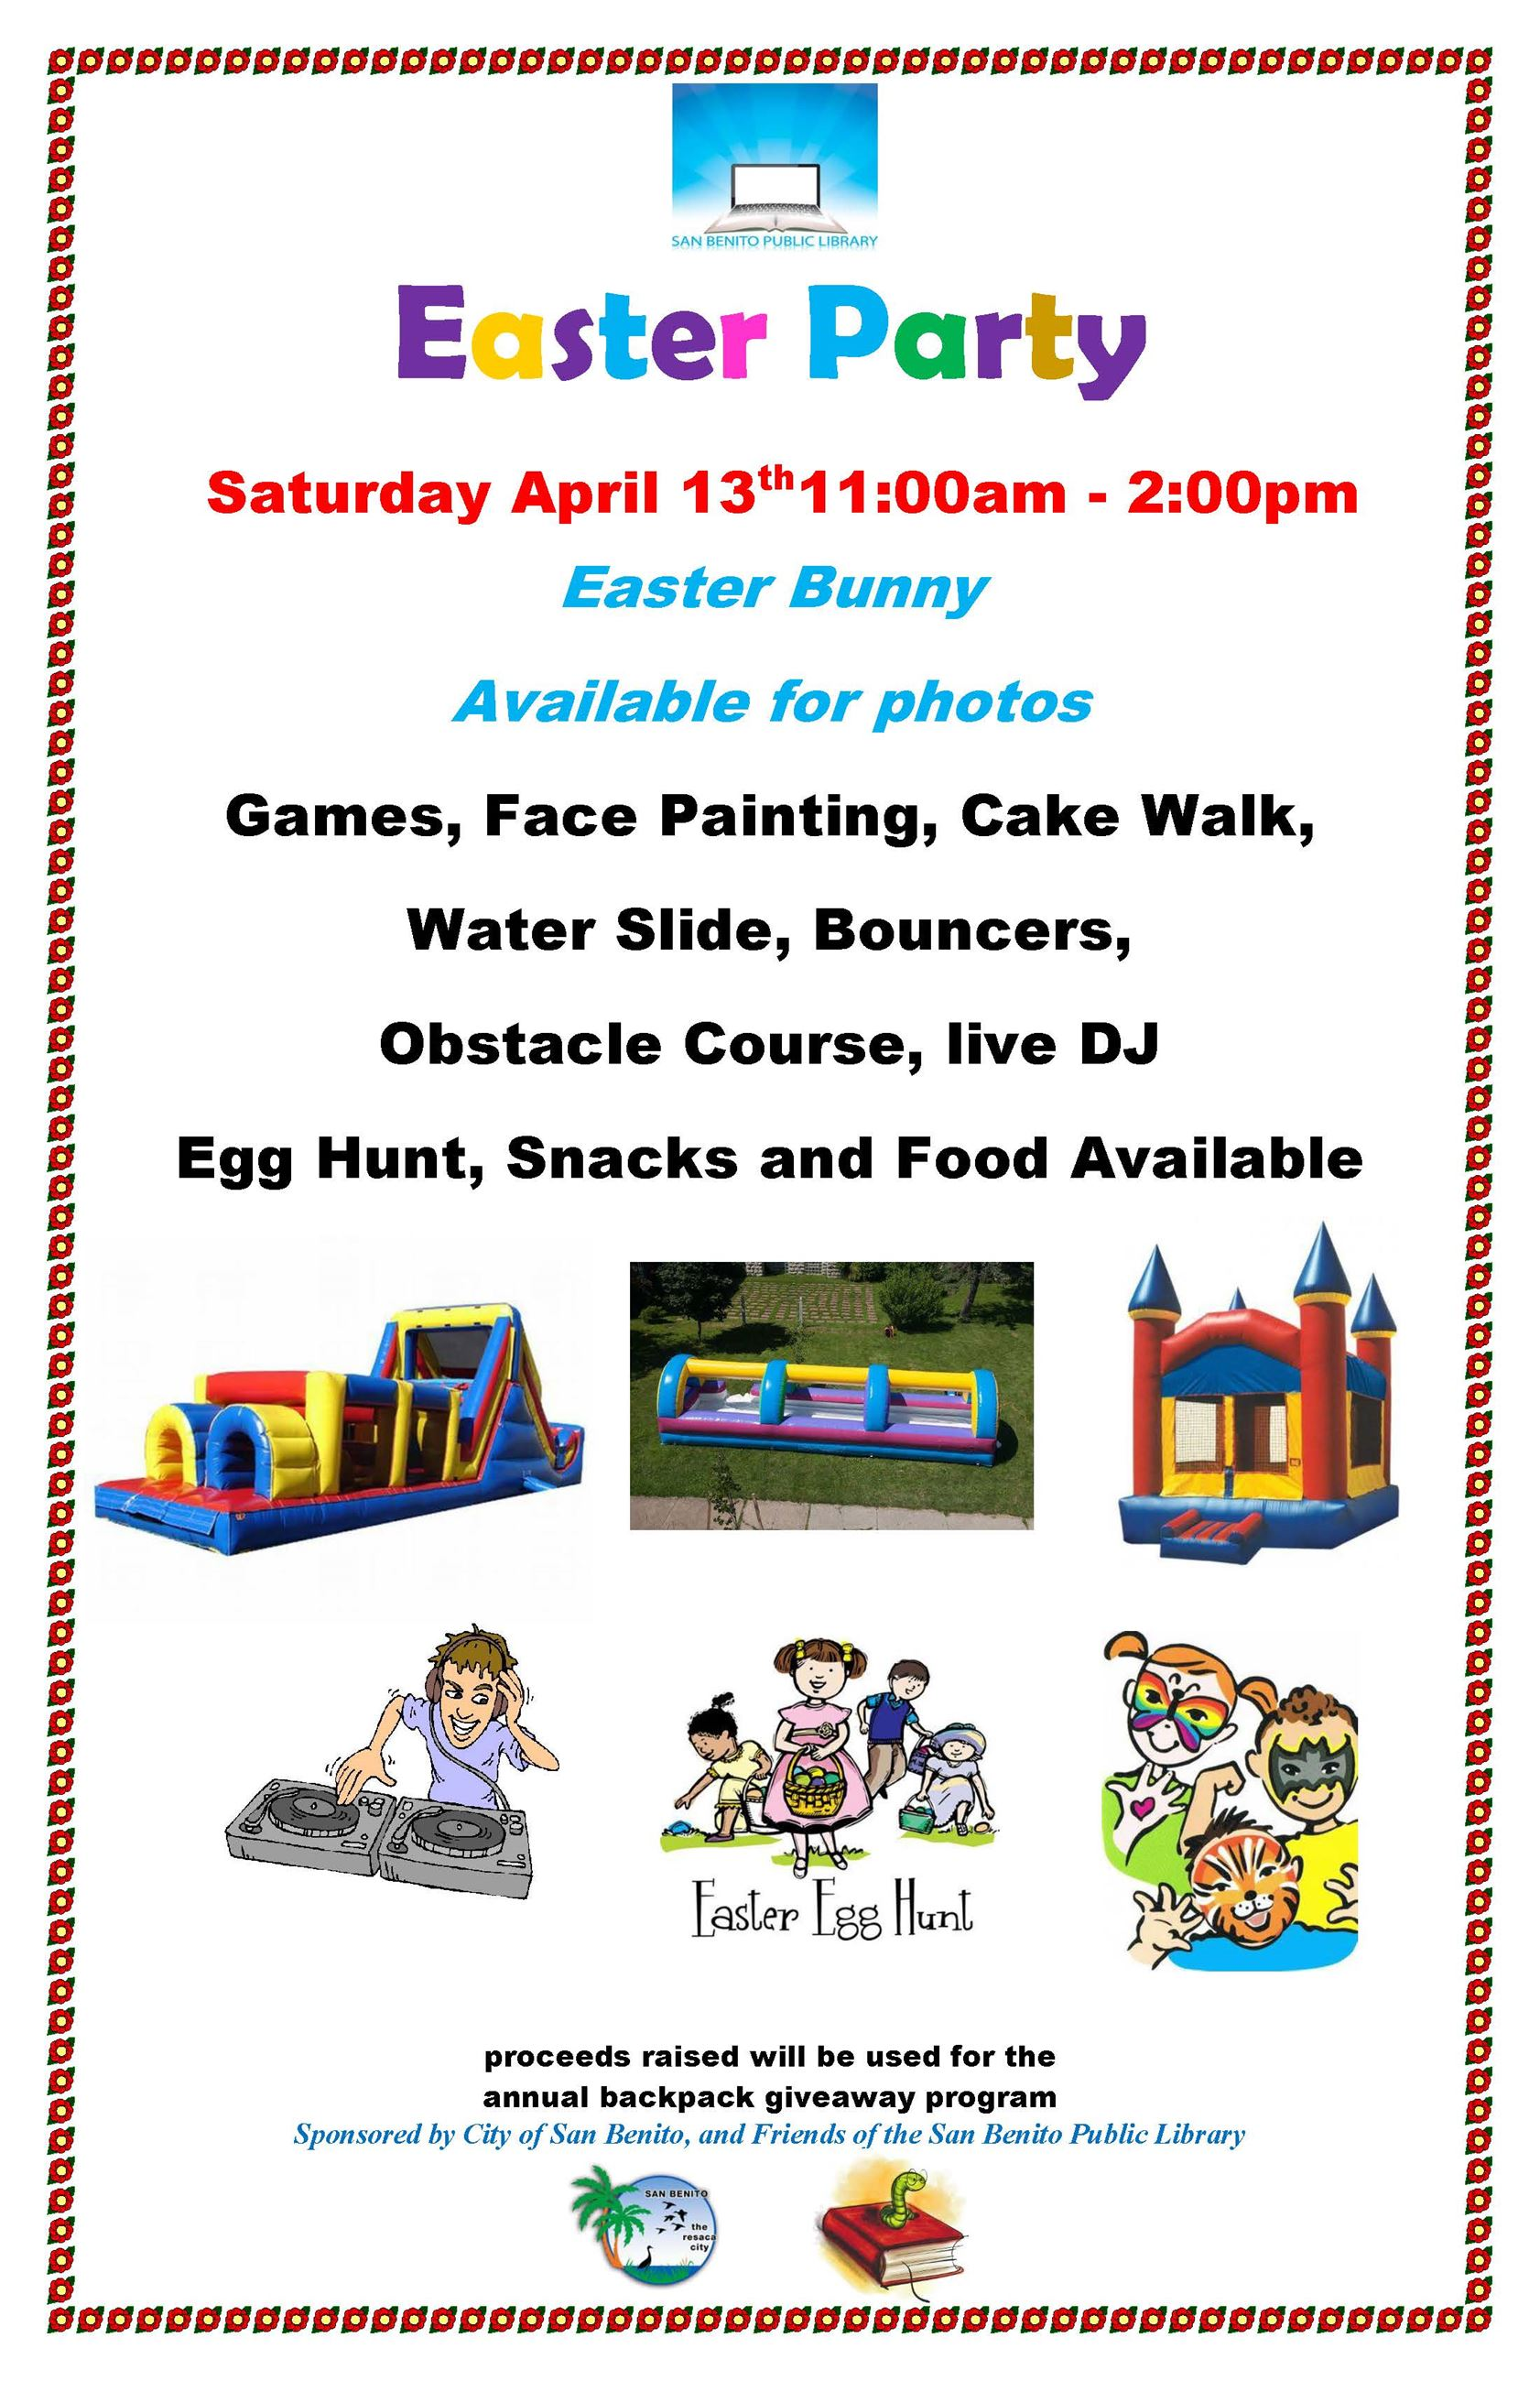 Easter Program 2019 Attractions Flyer